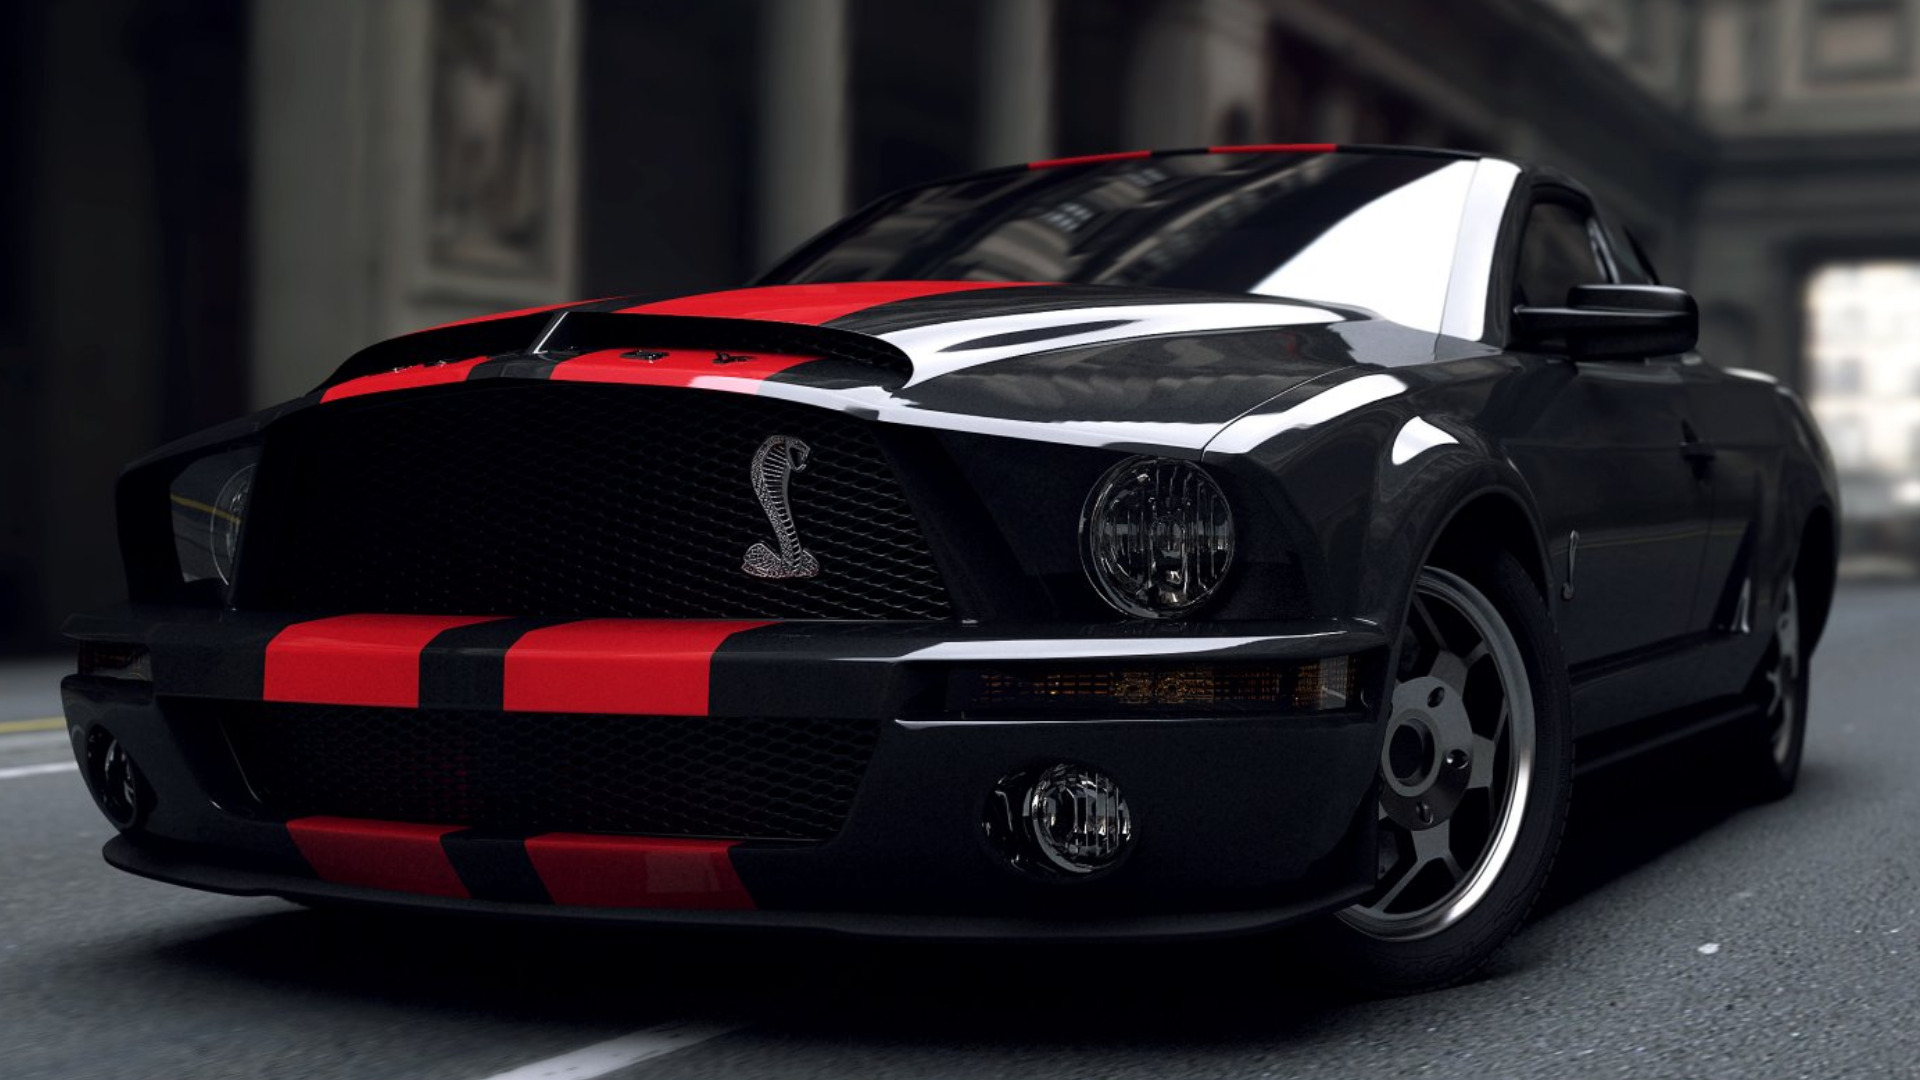 Ford Mustang HD Wallpapers 1080p - HD Wallpapers Pop